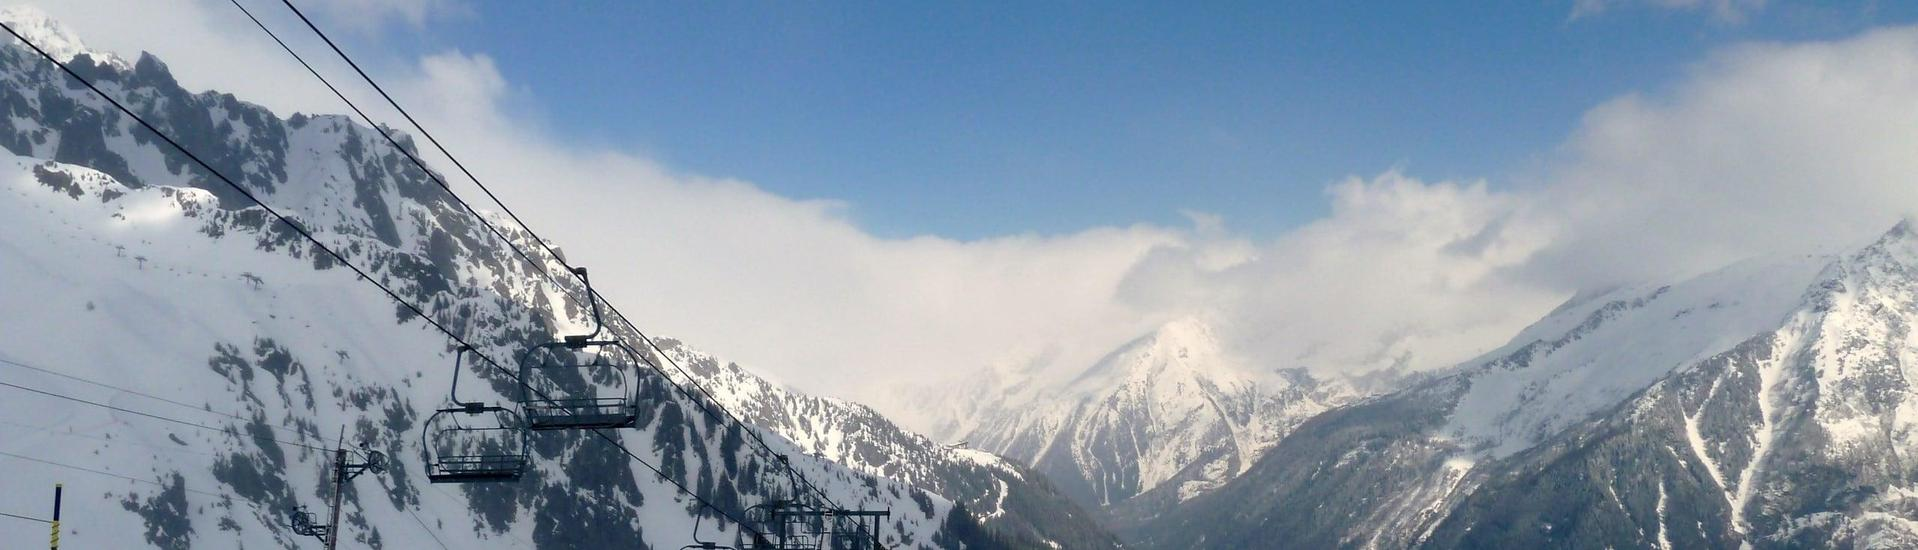 View over the sunny mountain landscape while learning to ski with the ski schools in Chamonix Village.